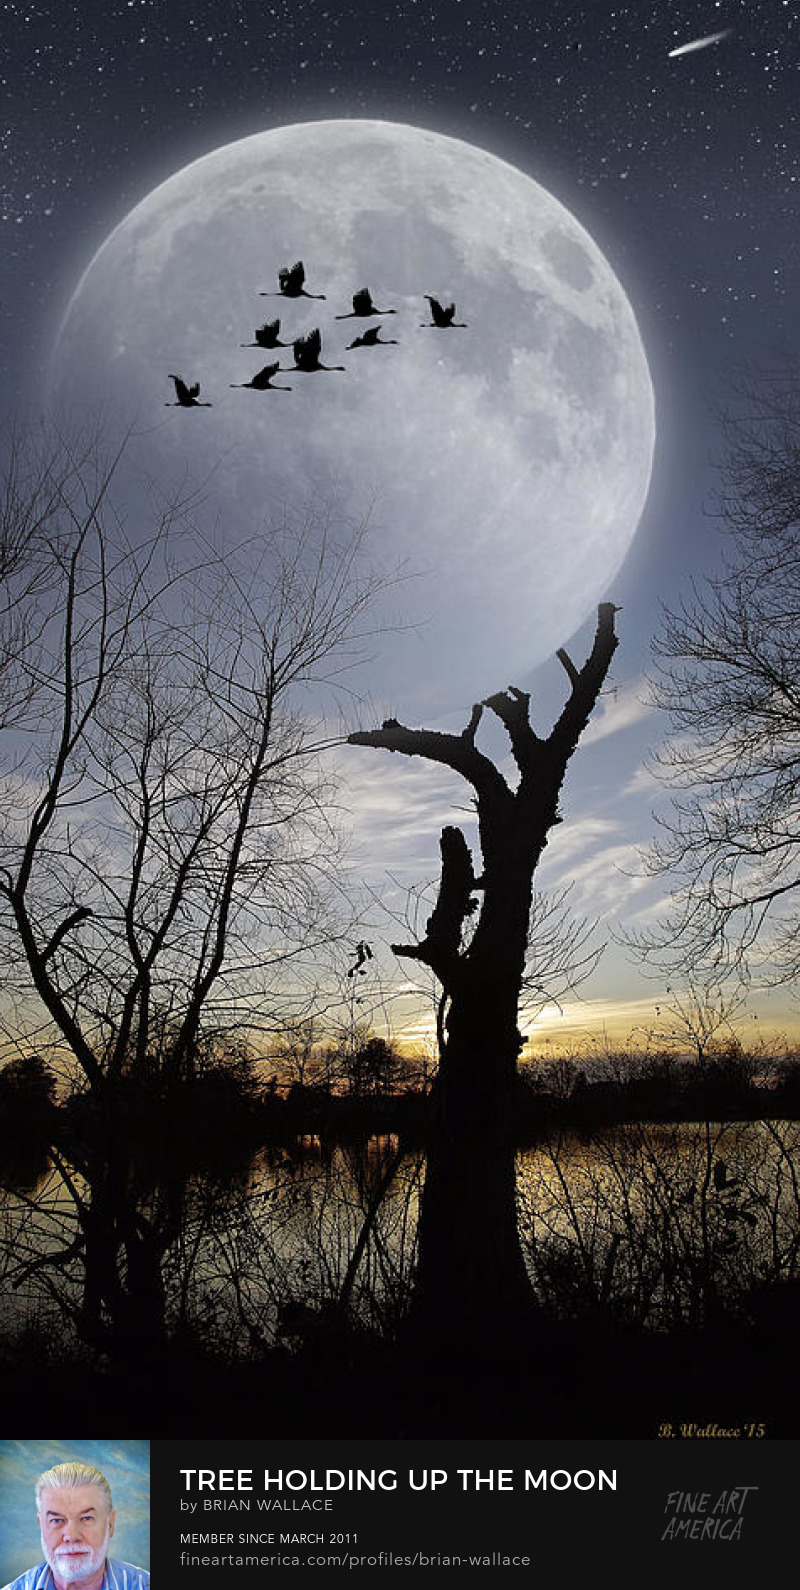 Tree Holding Up The Moon by Brian Wallace